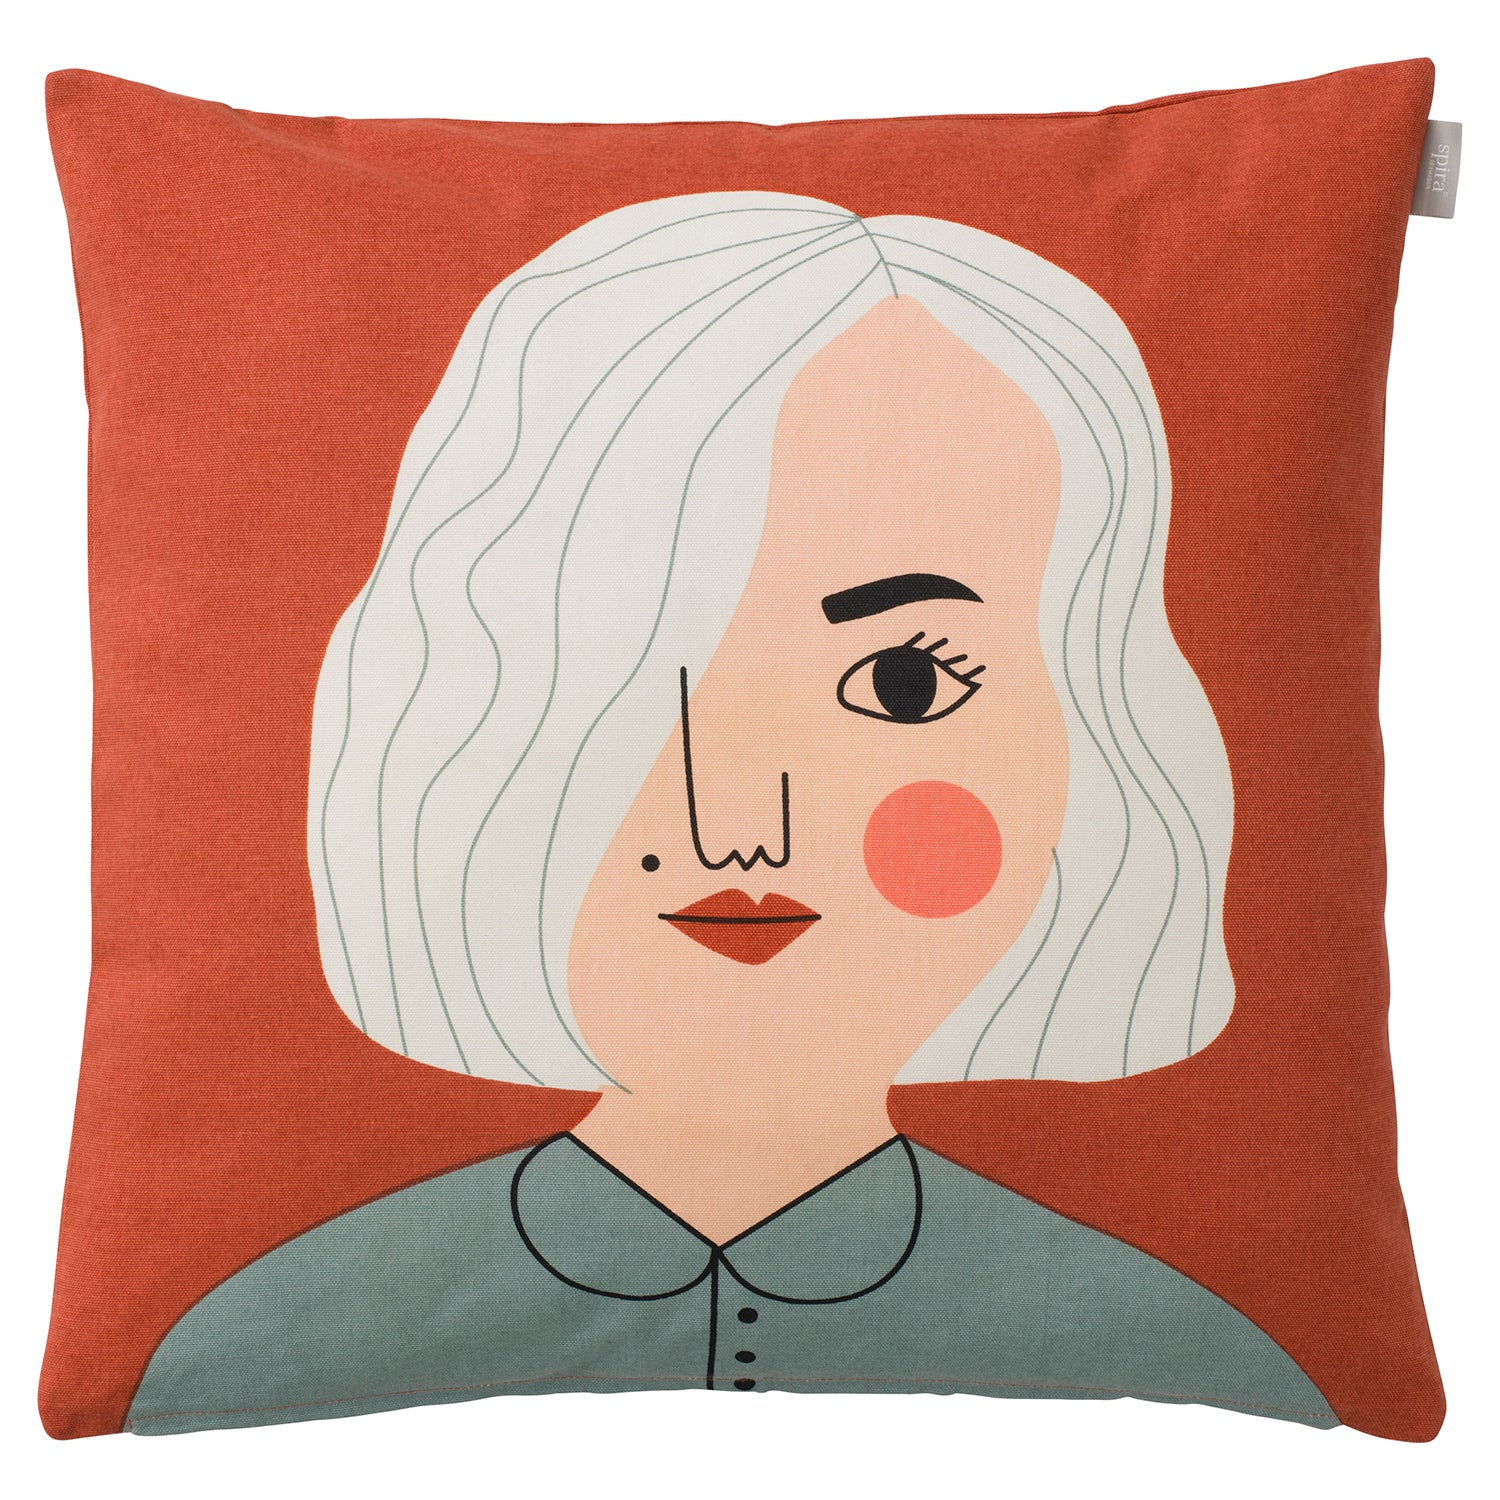 Handprinted cotton cushion cover